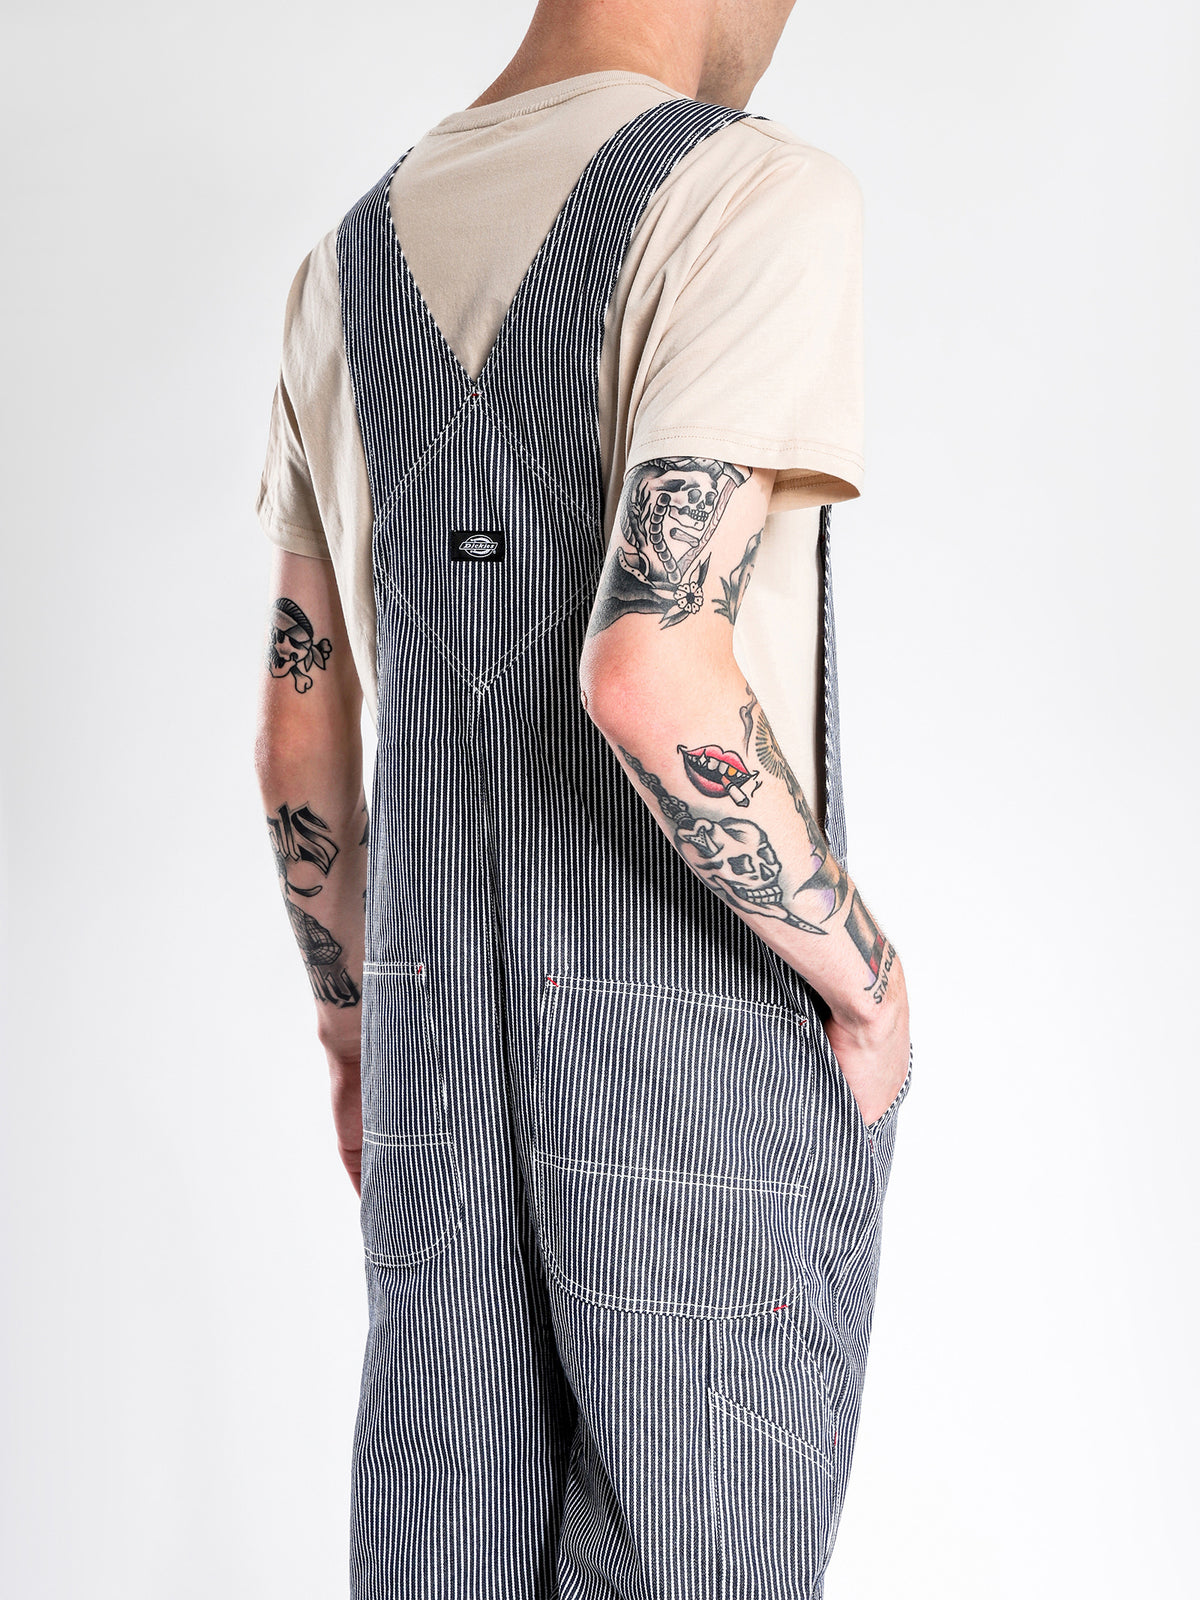 Kempton Hickory Bib Overall in Blue Stripe